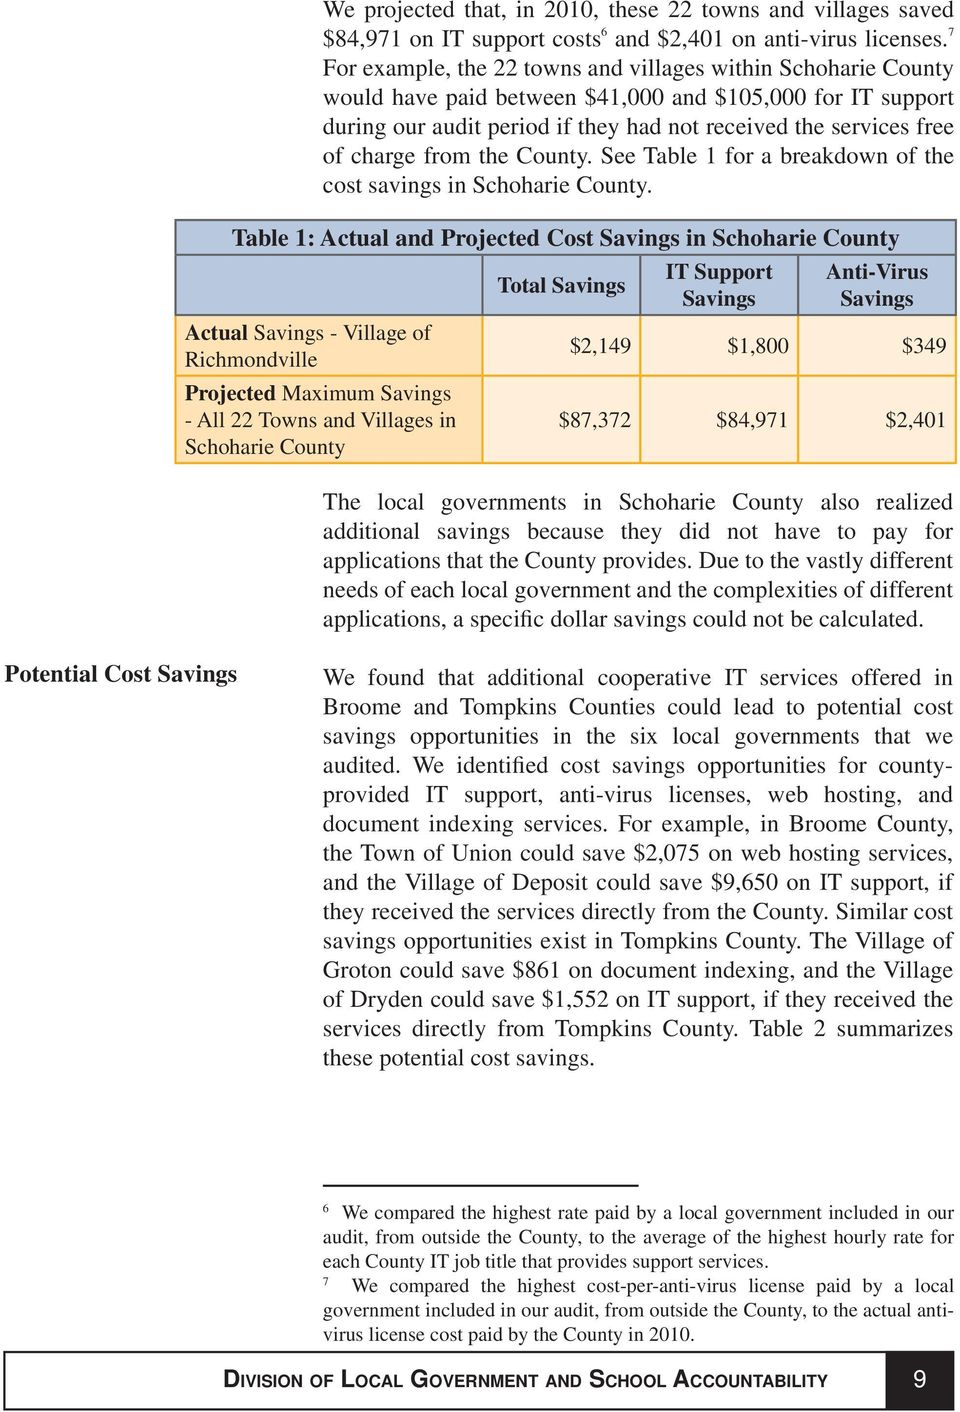 charge from the County. See Table 1 for a breakdown of the cost savings in Schoharie County.